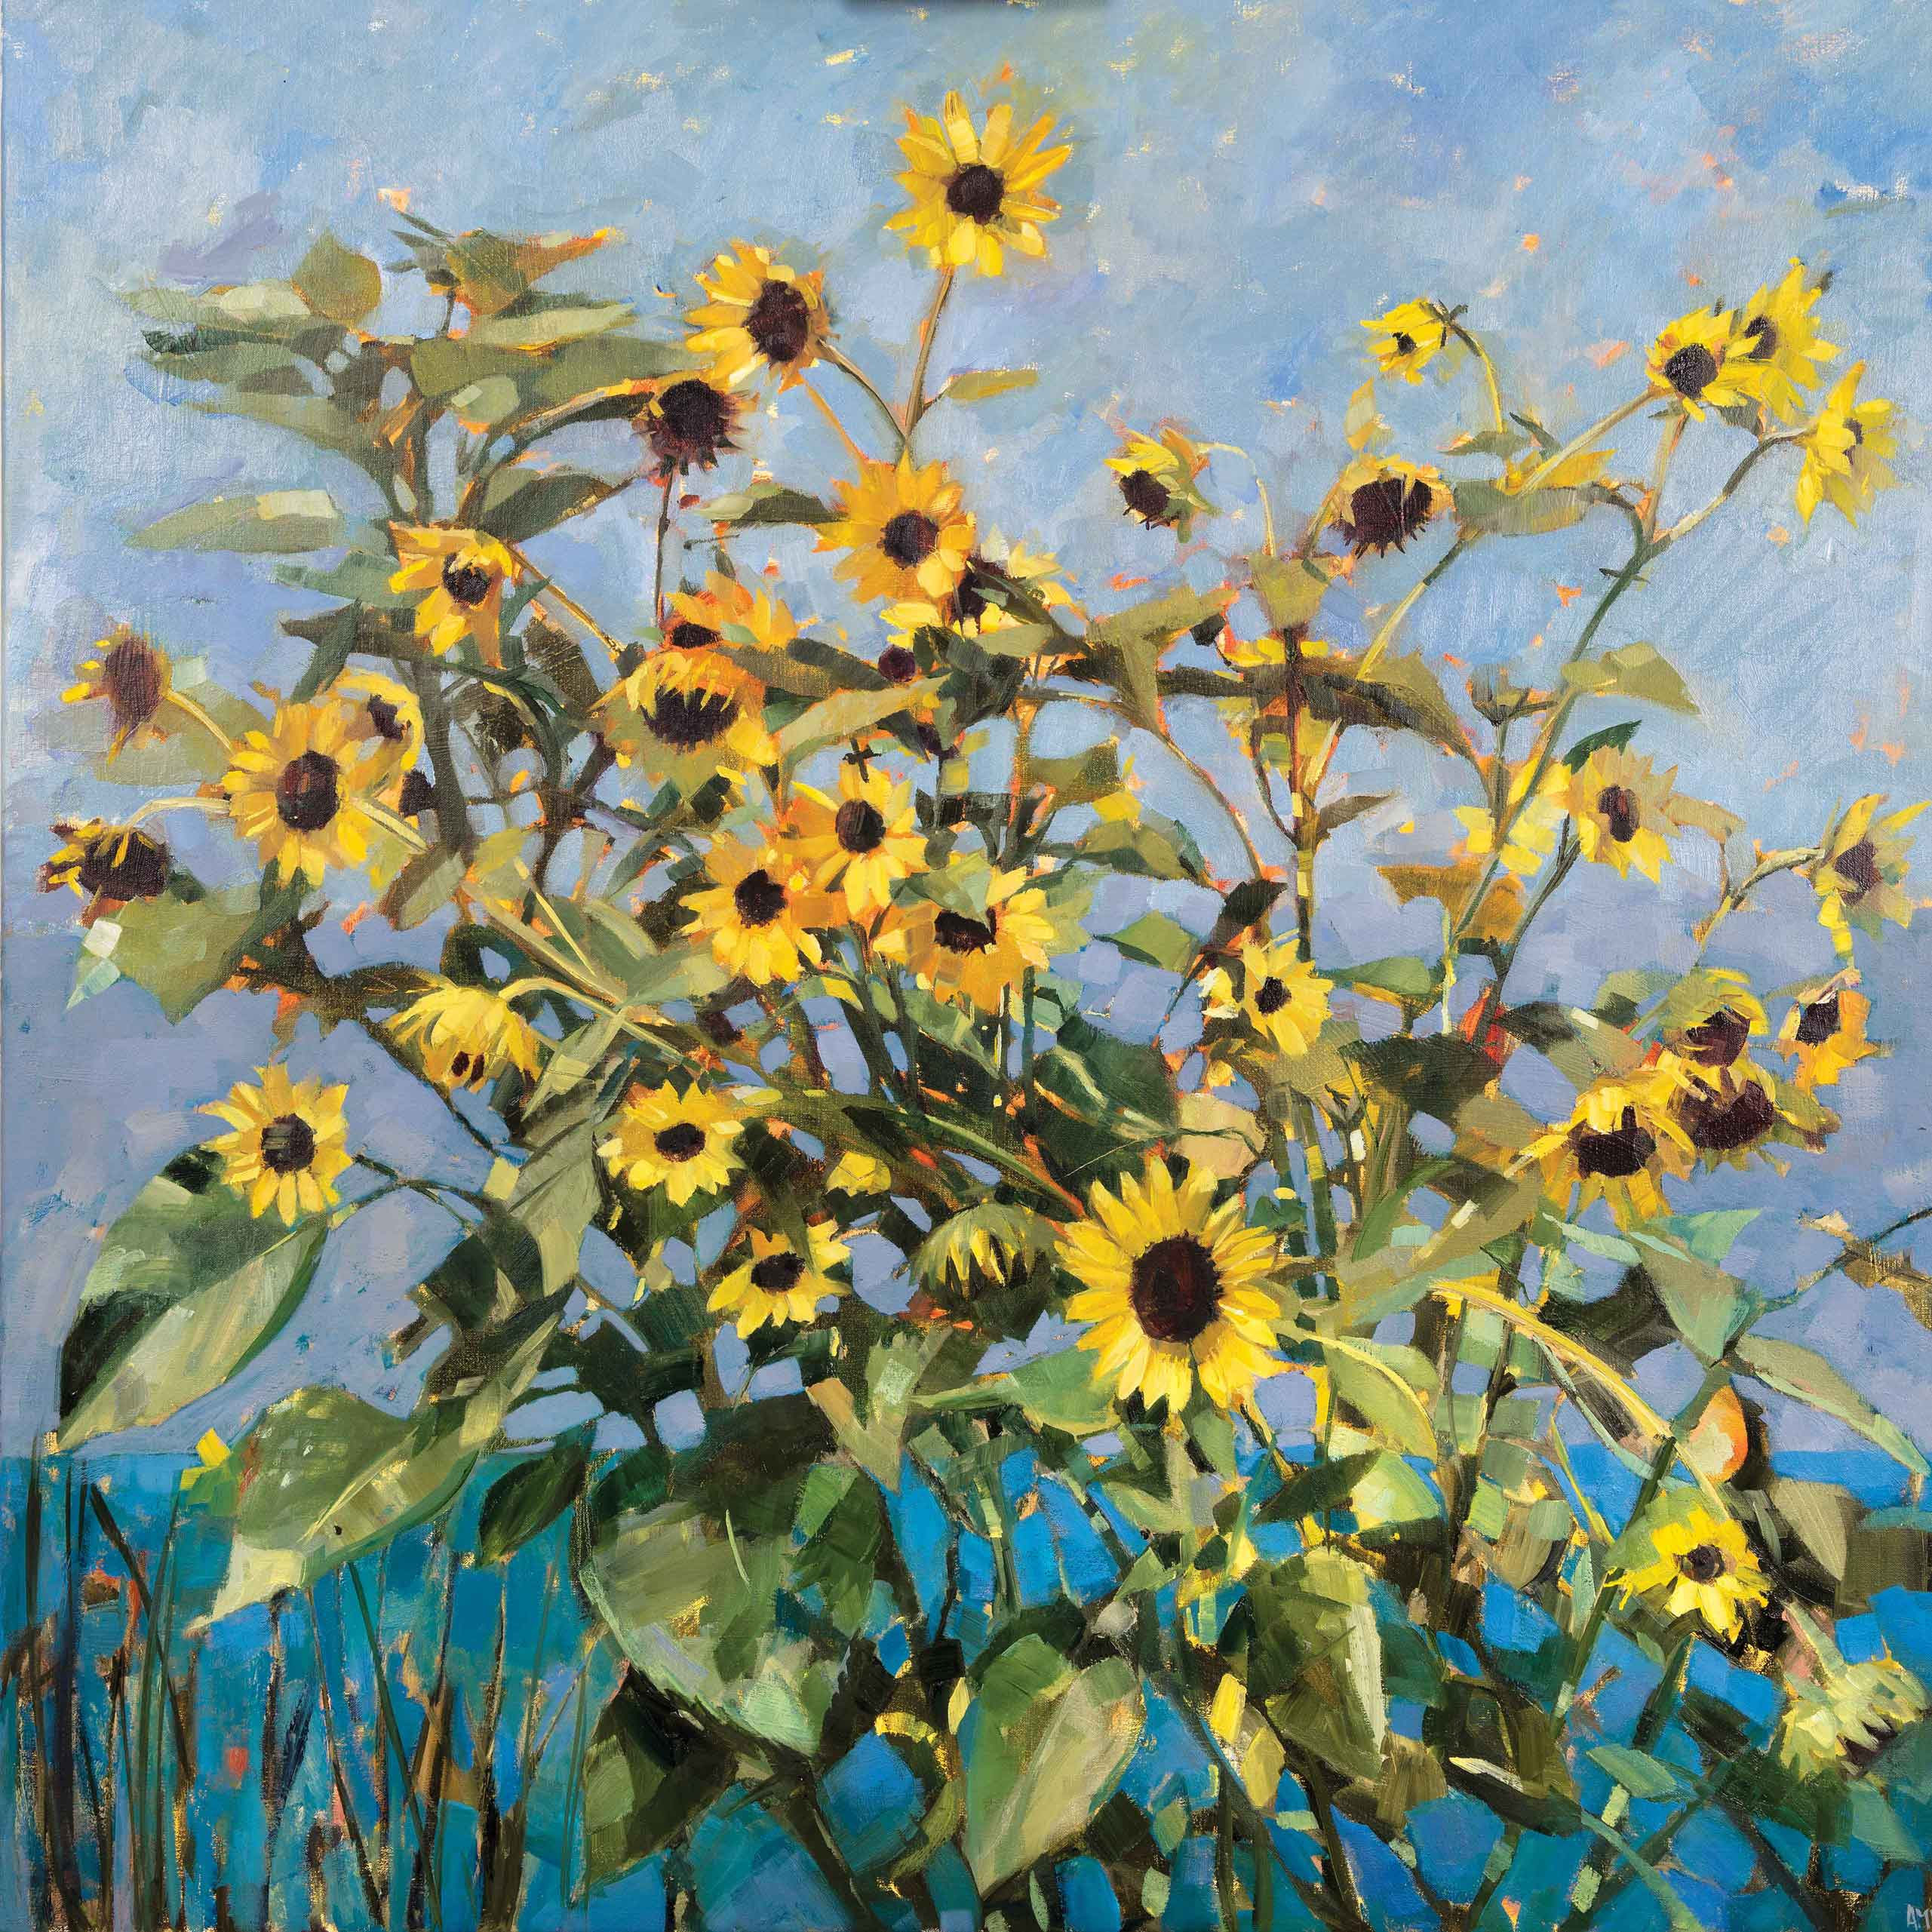 Art Greeting Card by Anne-Marie Butlin, Oilpainting, Sunflowers